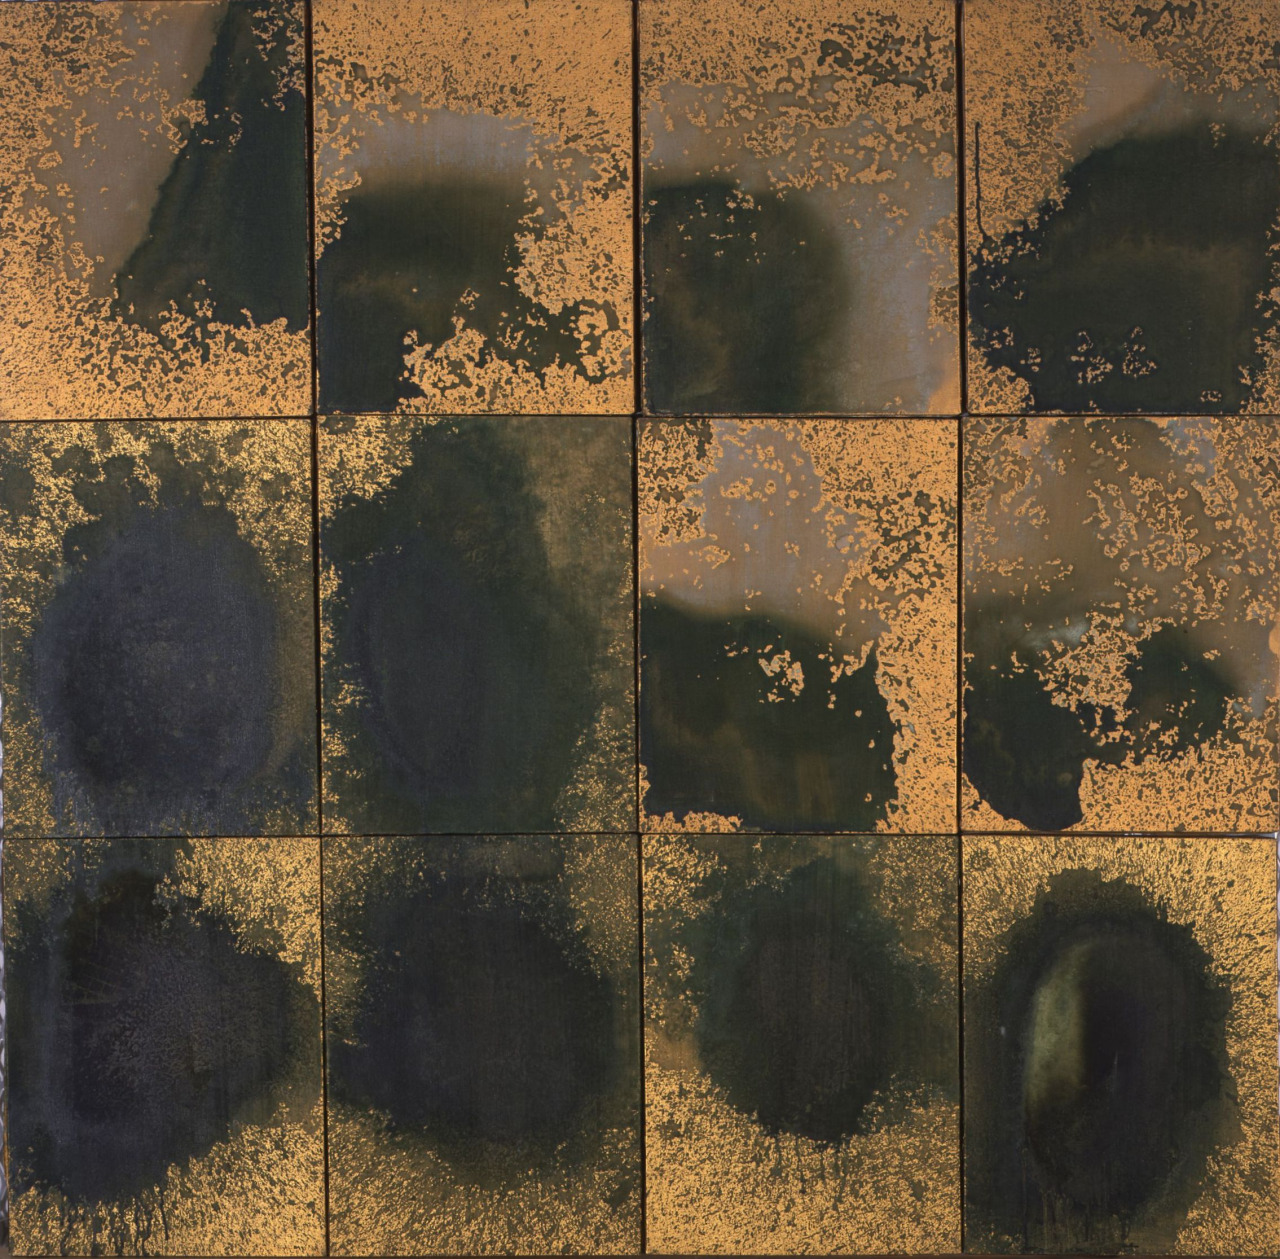 Andy Warhol, Oxidation Painting (in 12 parts), 1978. Acrylic and urine in linen, 48 x 49 in. (121.9 x 124.5 cm) Image courtesy of: © 2010 The Andy Warhol Foundation for the Visual Arts Artists Rights Society (ARS), New York.